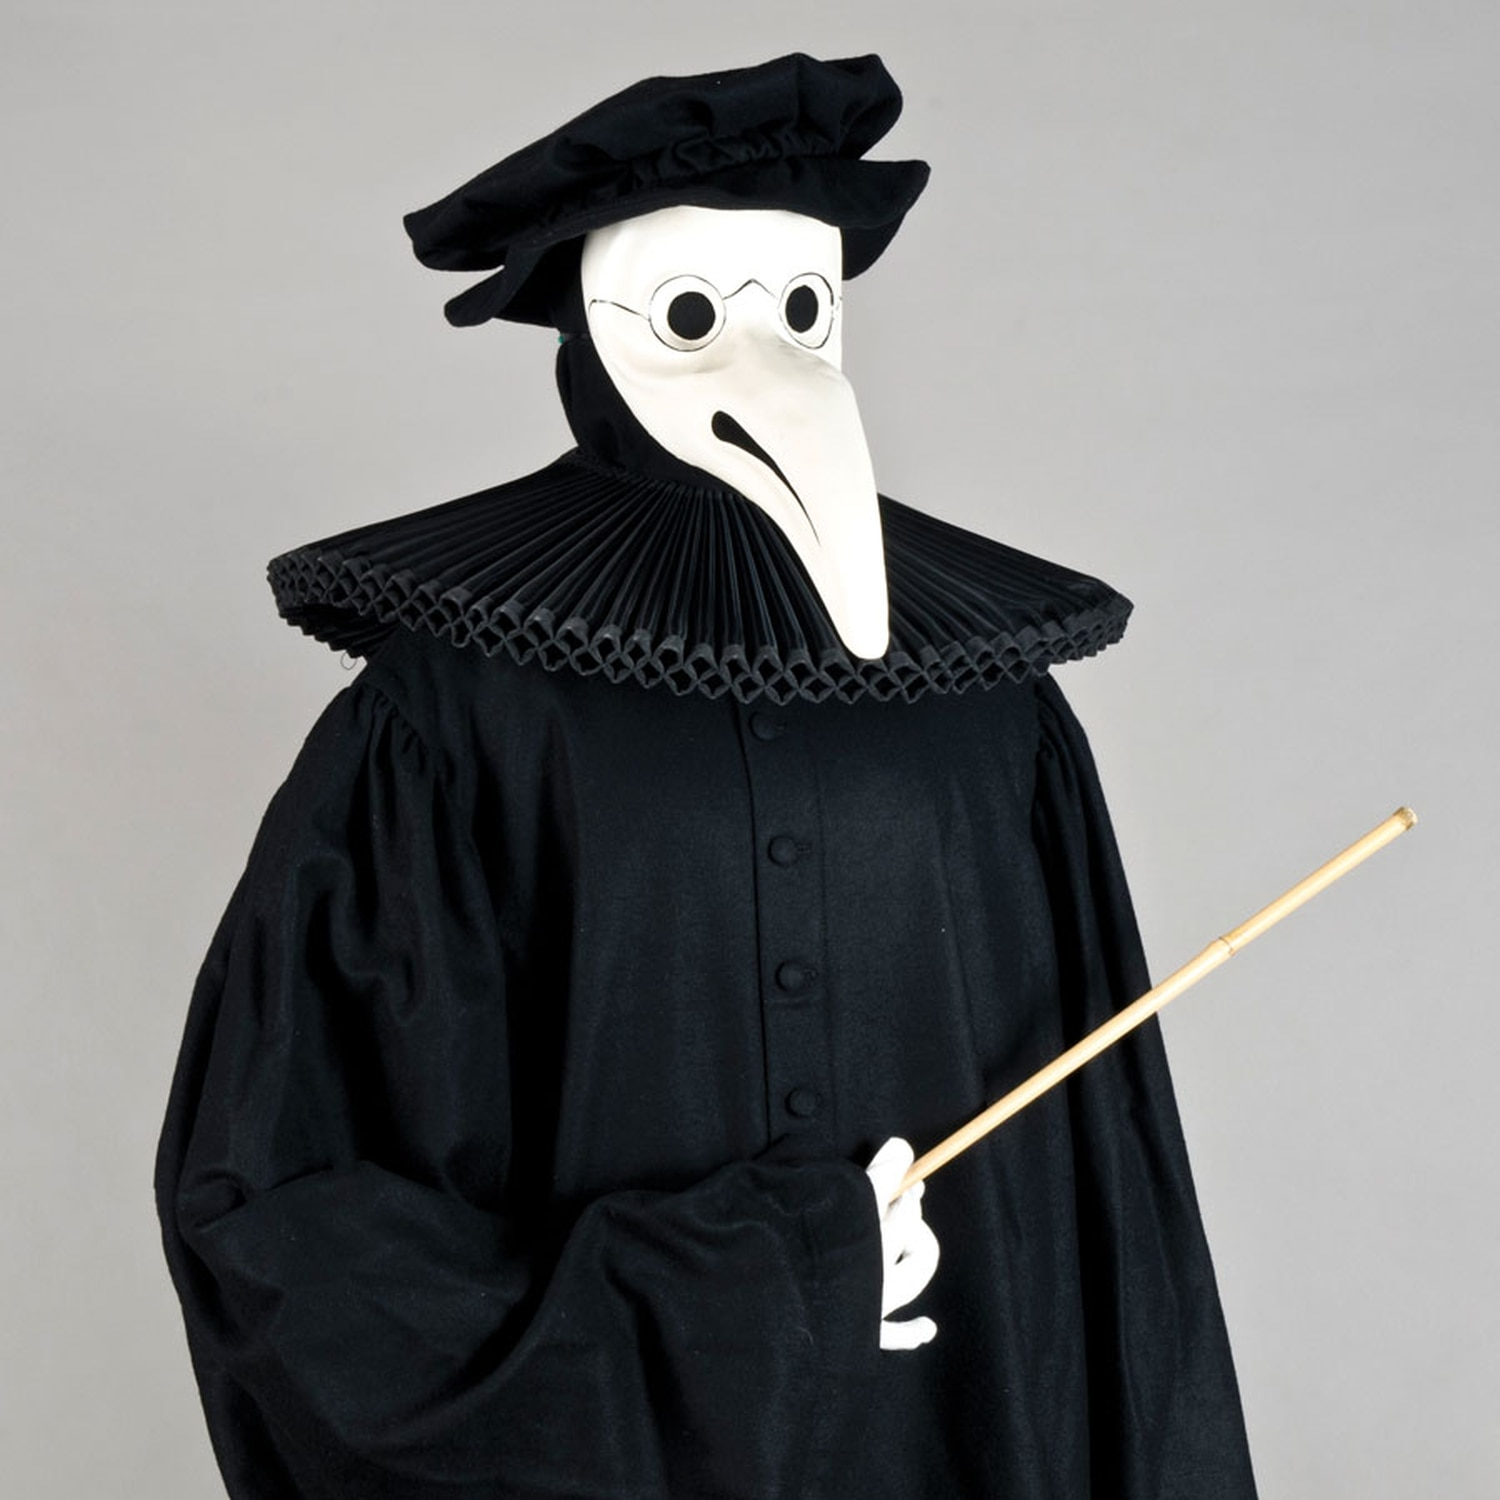 """""""Plague Doctor Carnival Costume"""" from Atelier Semenzato Paolo, part of MOIFA's upcoming #mask show."""